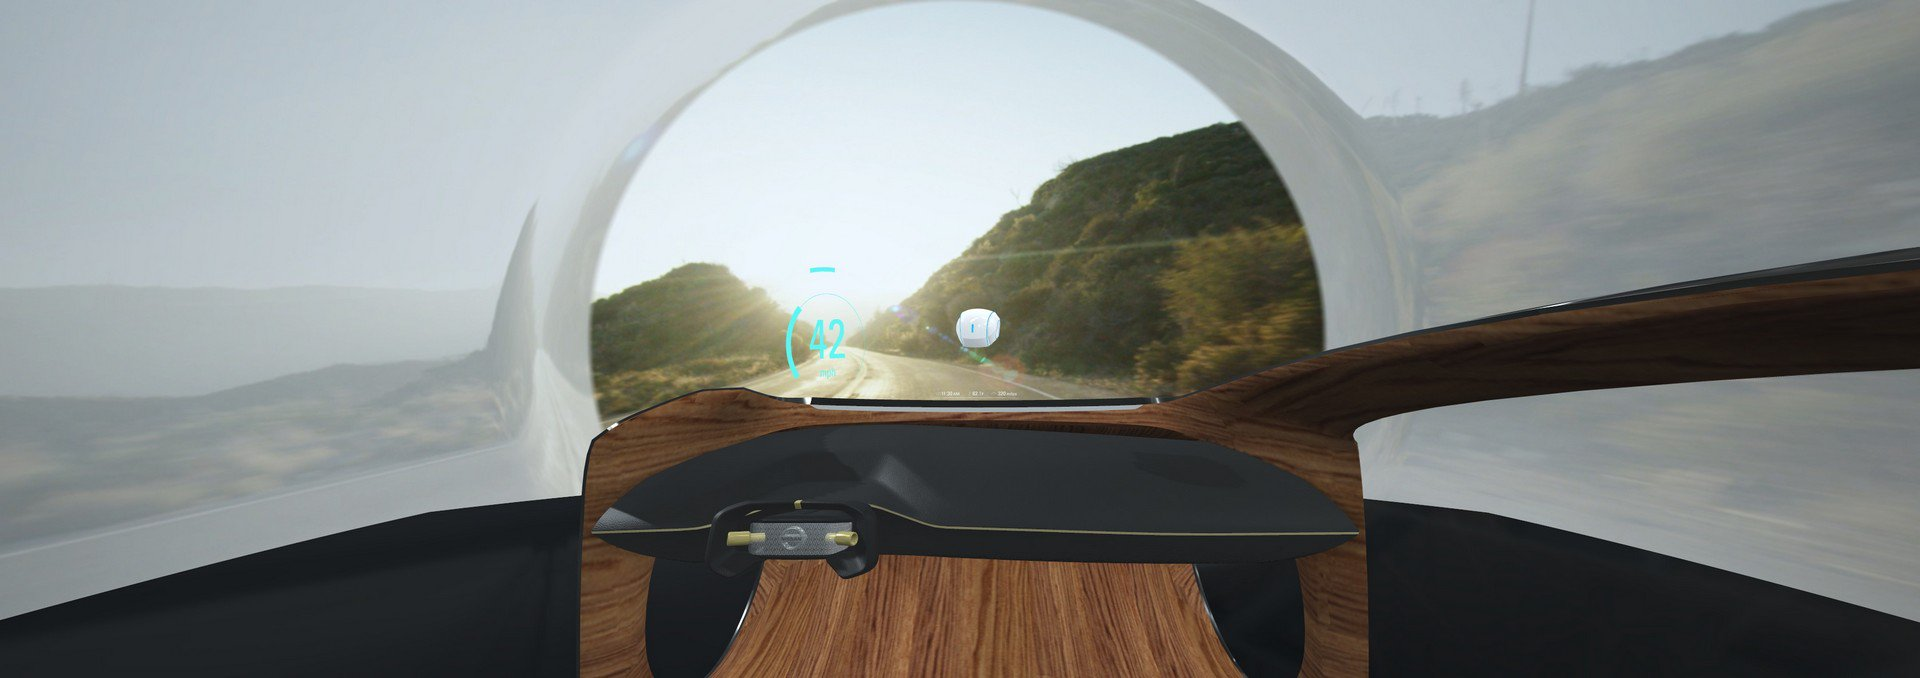 Nissan Invisible-to-Visible technology concept (7)